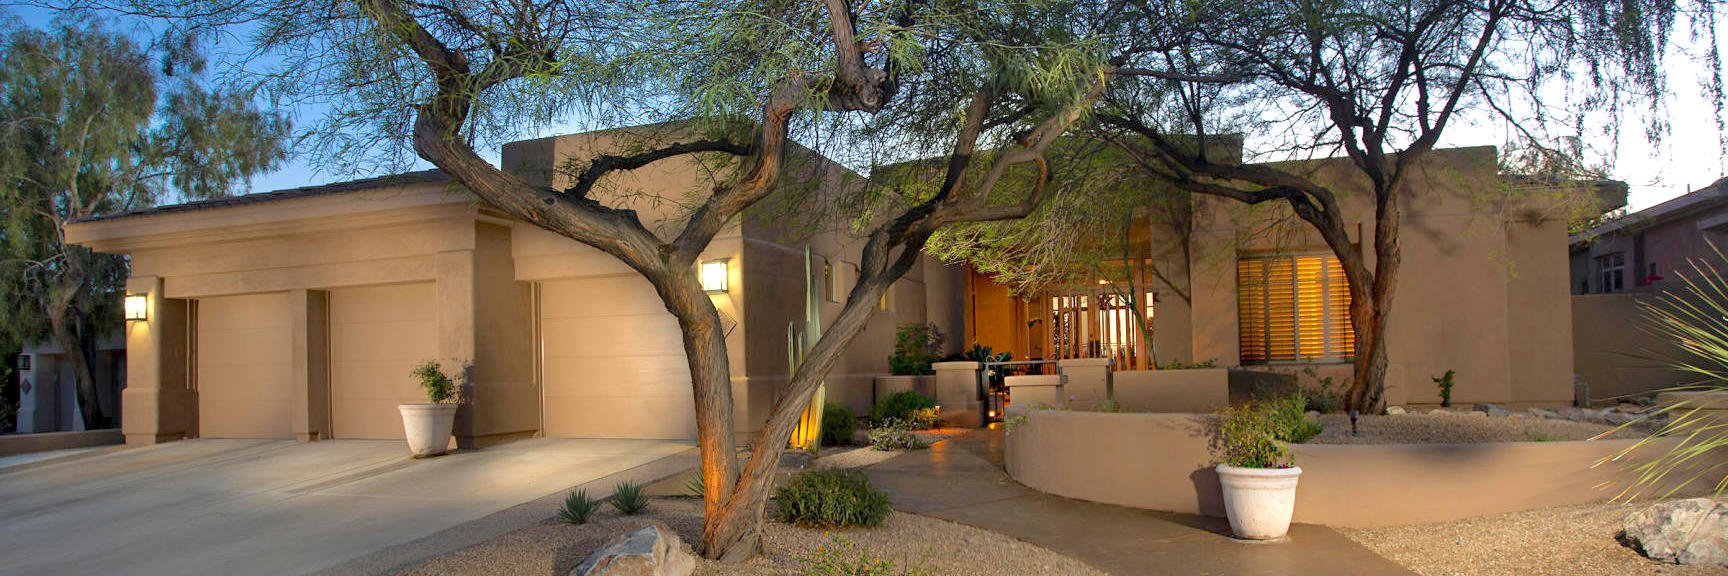 mcdowell-mountain-ranch-luxury-homes-for-sale-scottsdale-00